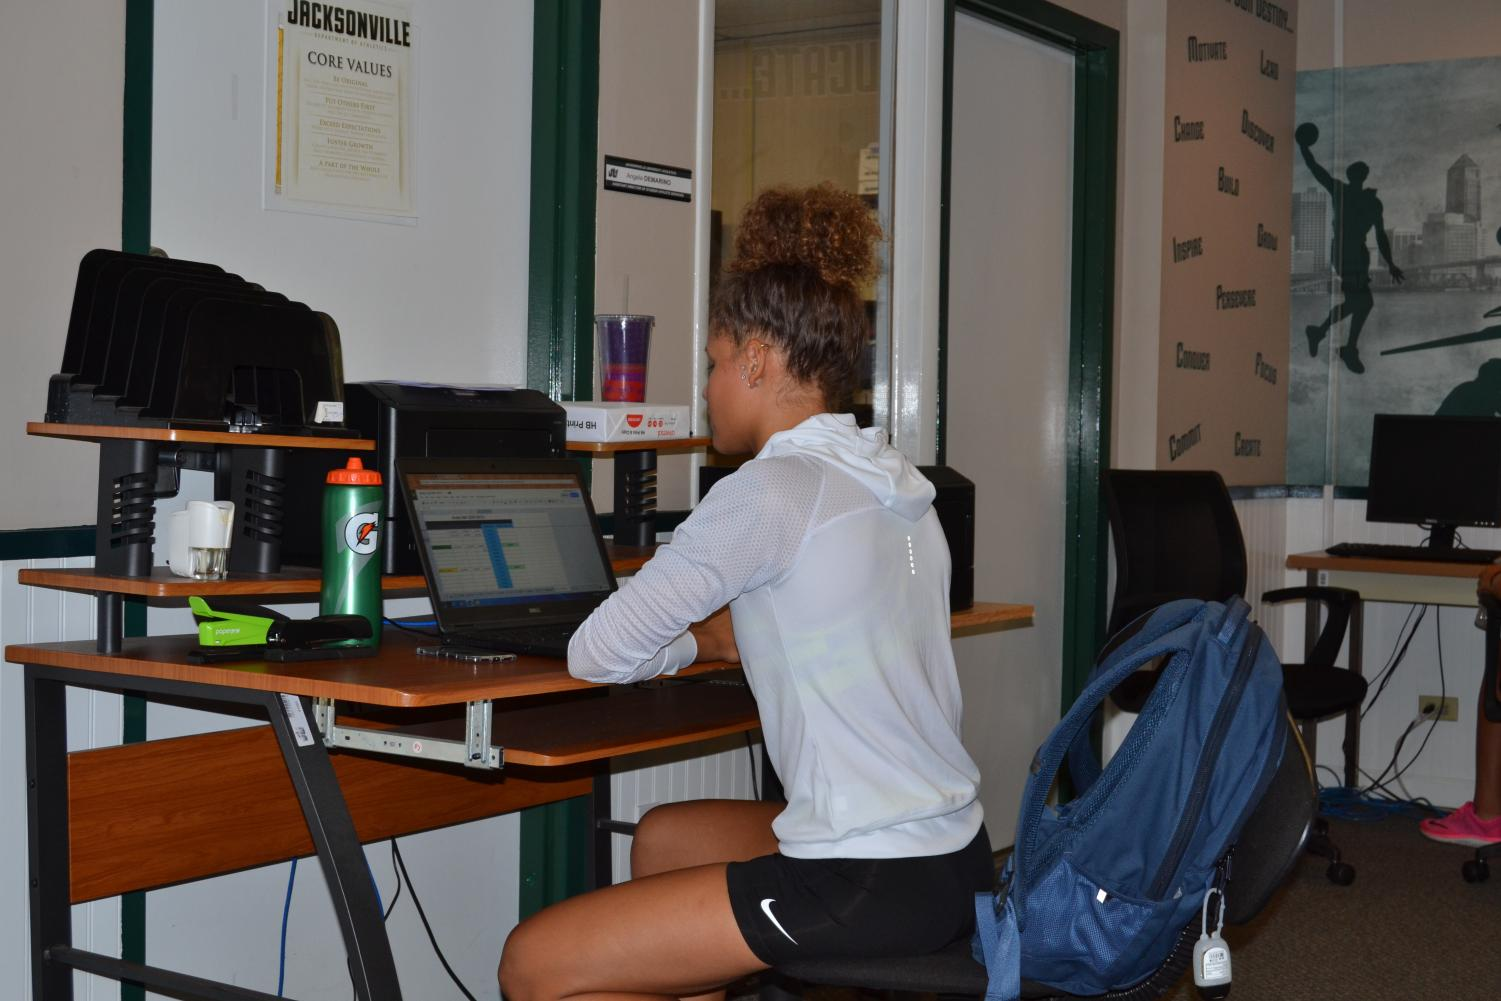 JU track and field athlete, Lyric Schmalz, doing homework in the Student-Athlete Center for Success located in Botts Hall.